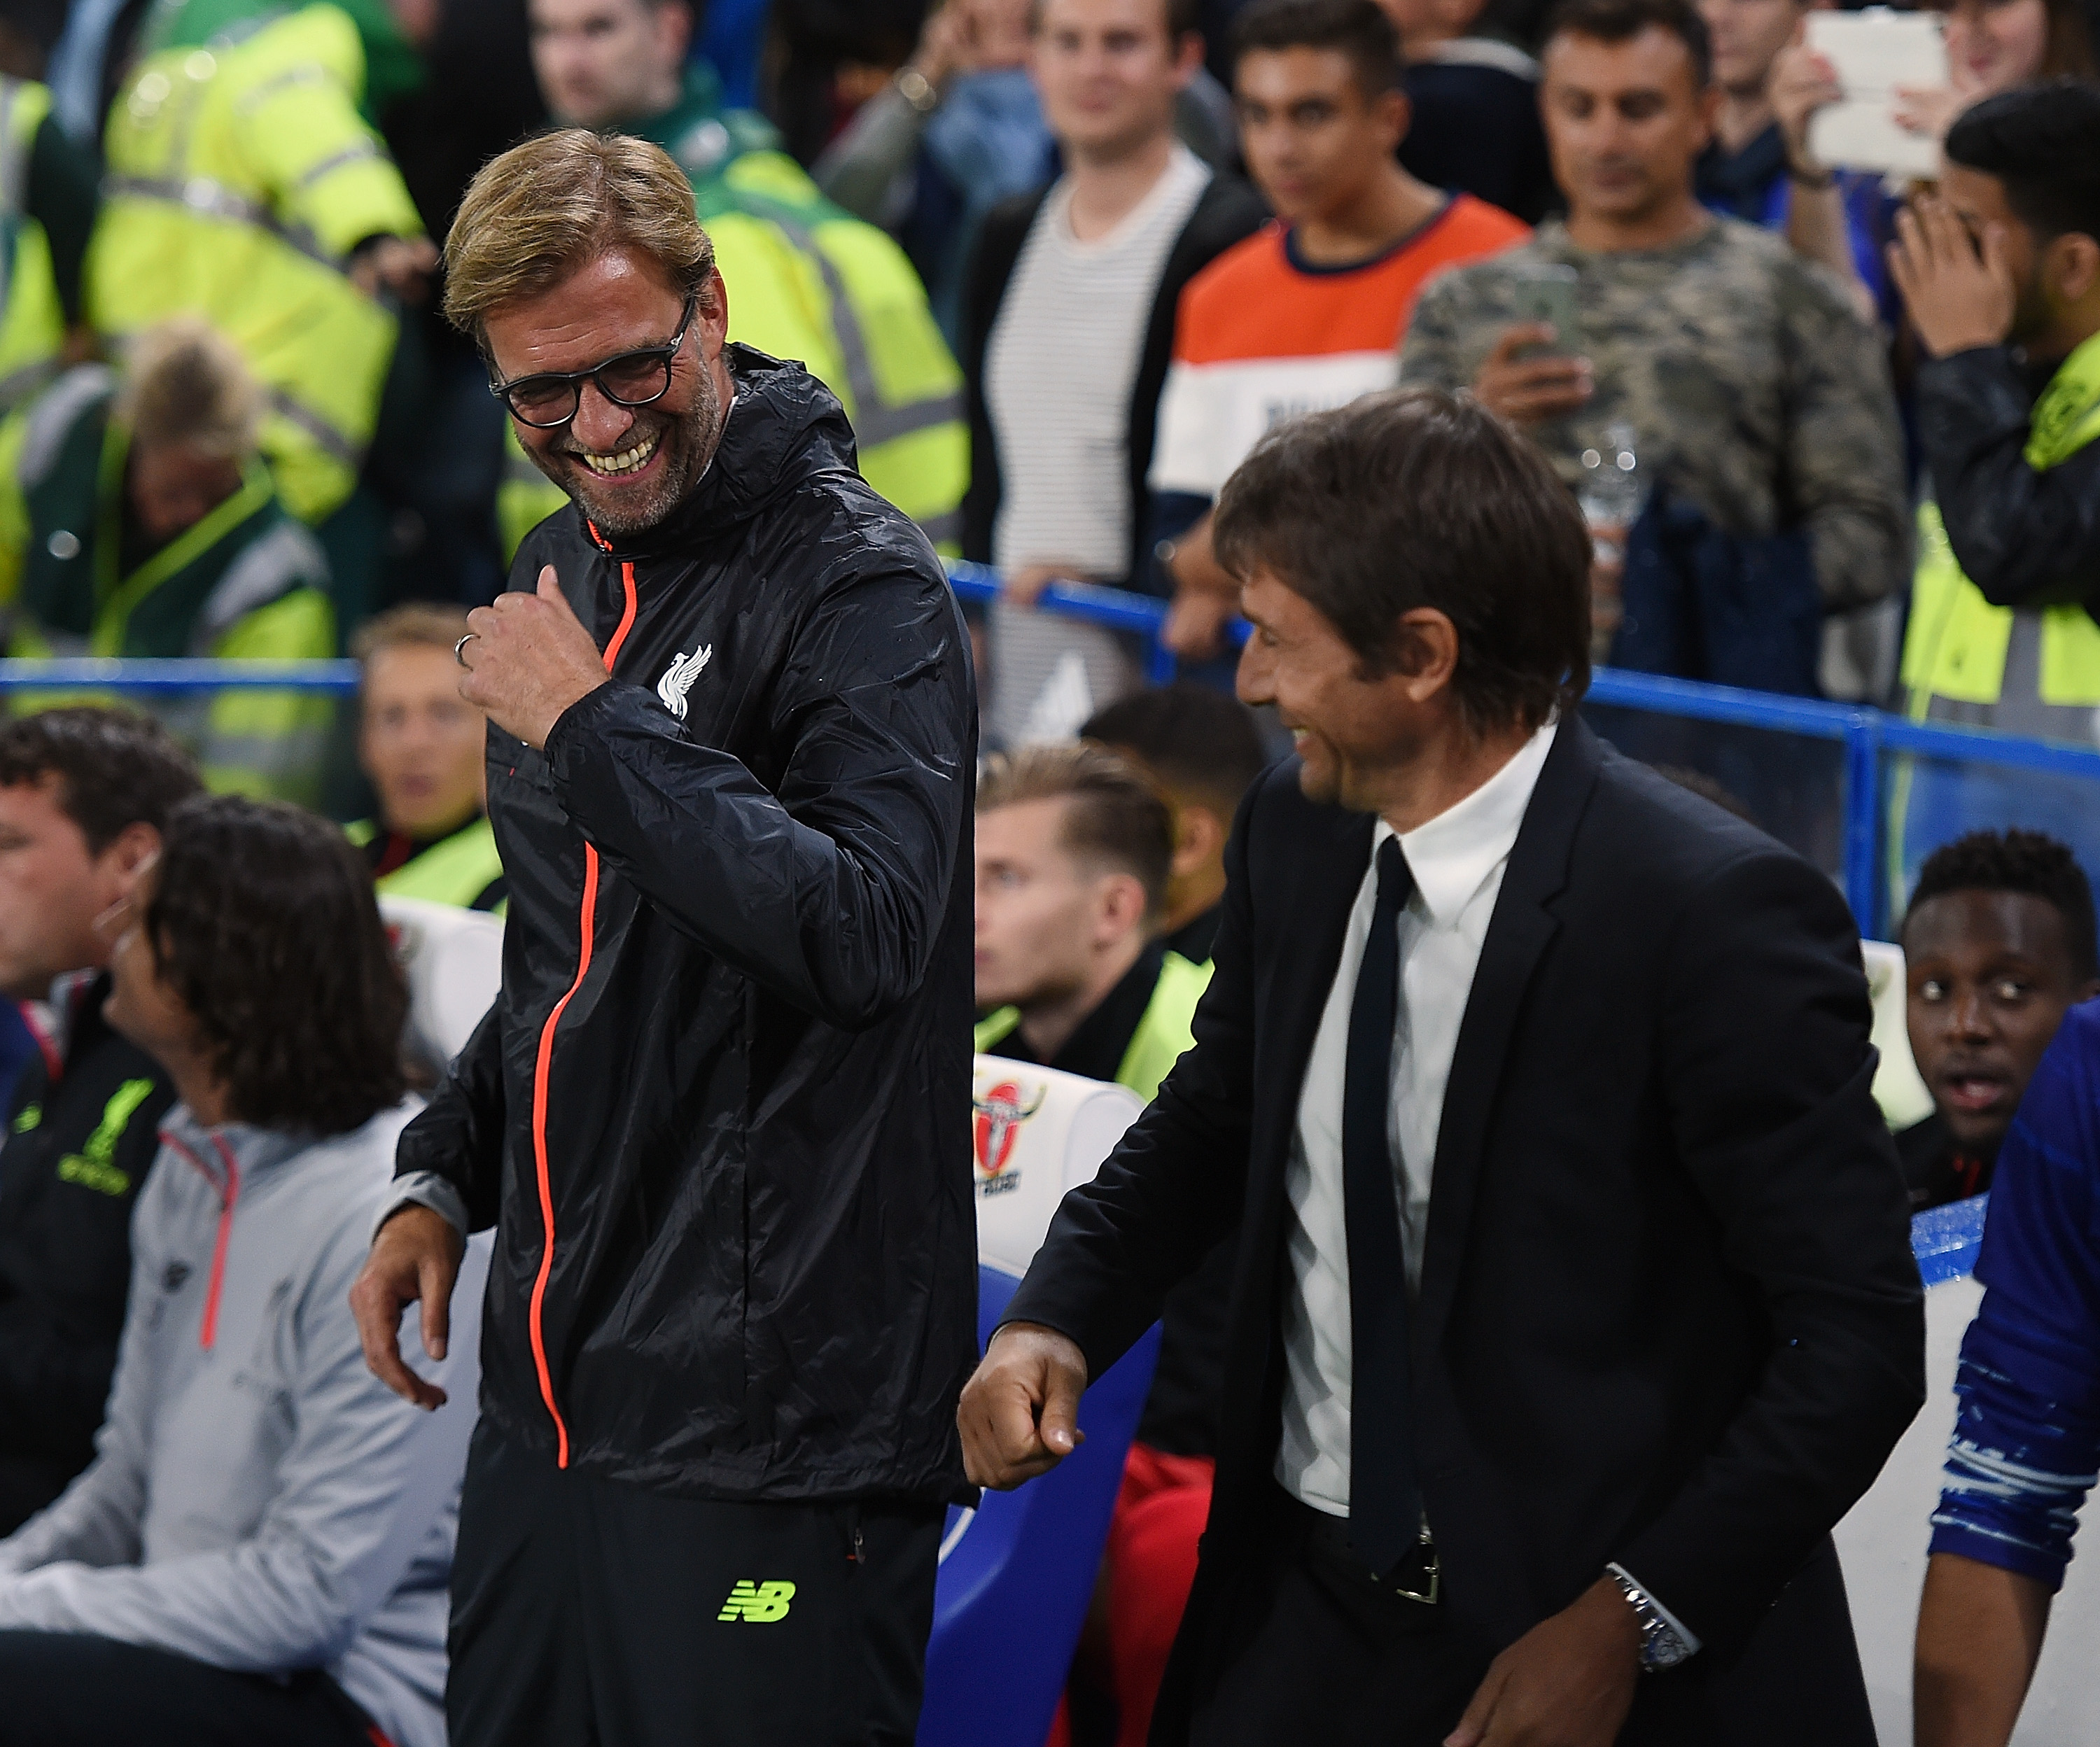 Chelsea are not uncatchable and Liverpool can still win the Premier League, says Didi Hamann